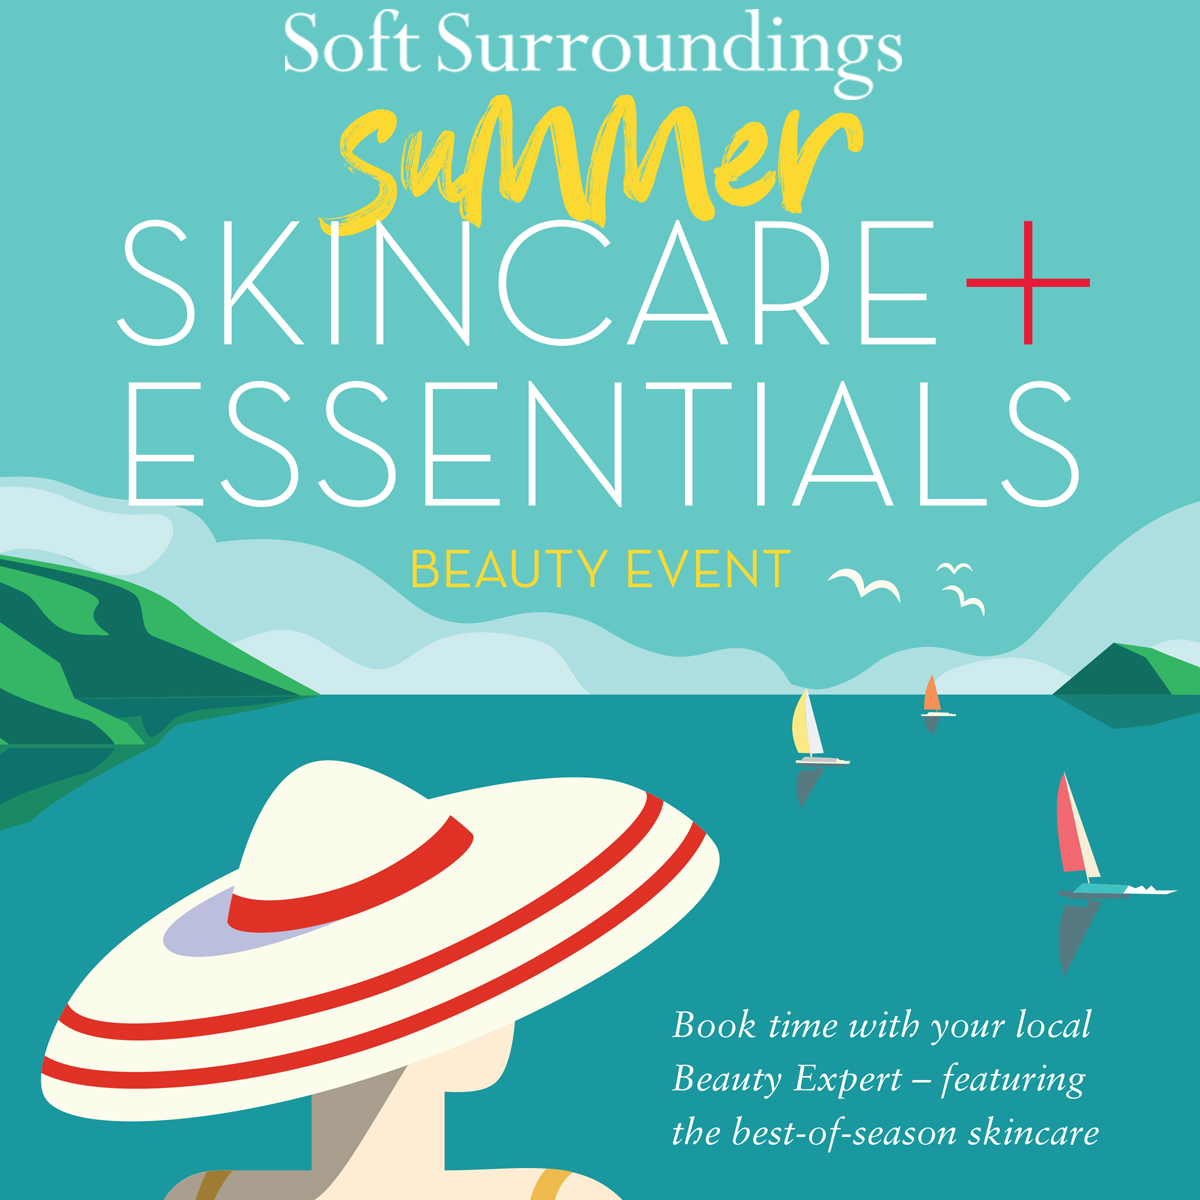 Soft Surroundings Summer Skincare and Essentials Beauty event.jpg